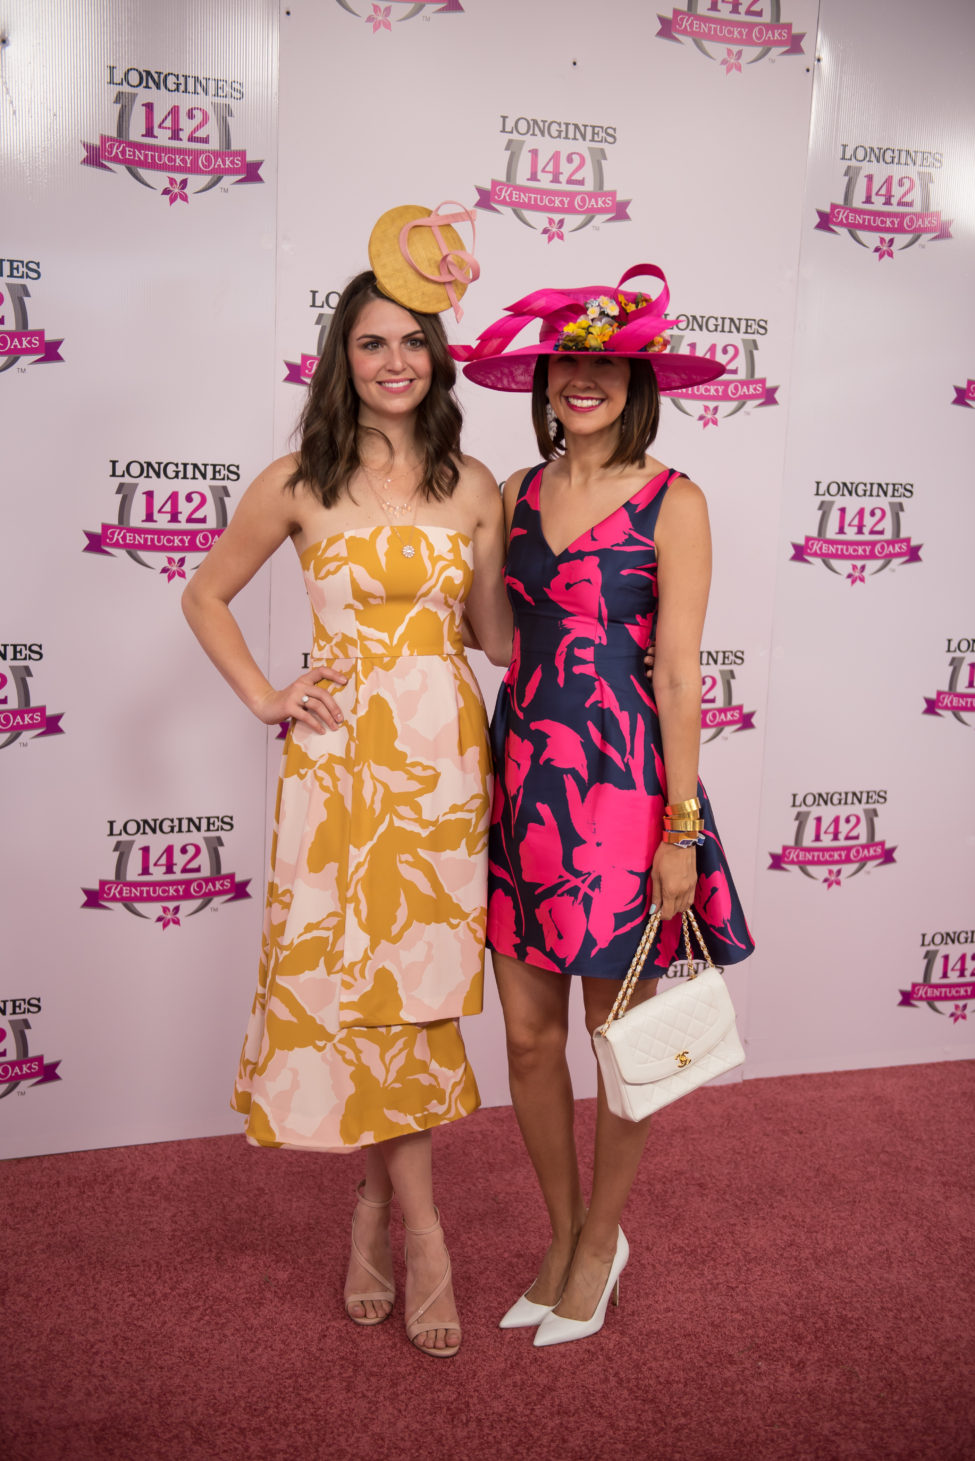 edb88e132 What to Wear to the Kentucky Derby - Carrie Colbert